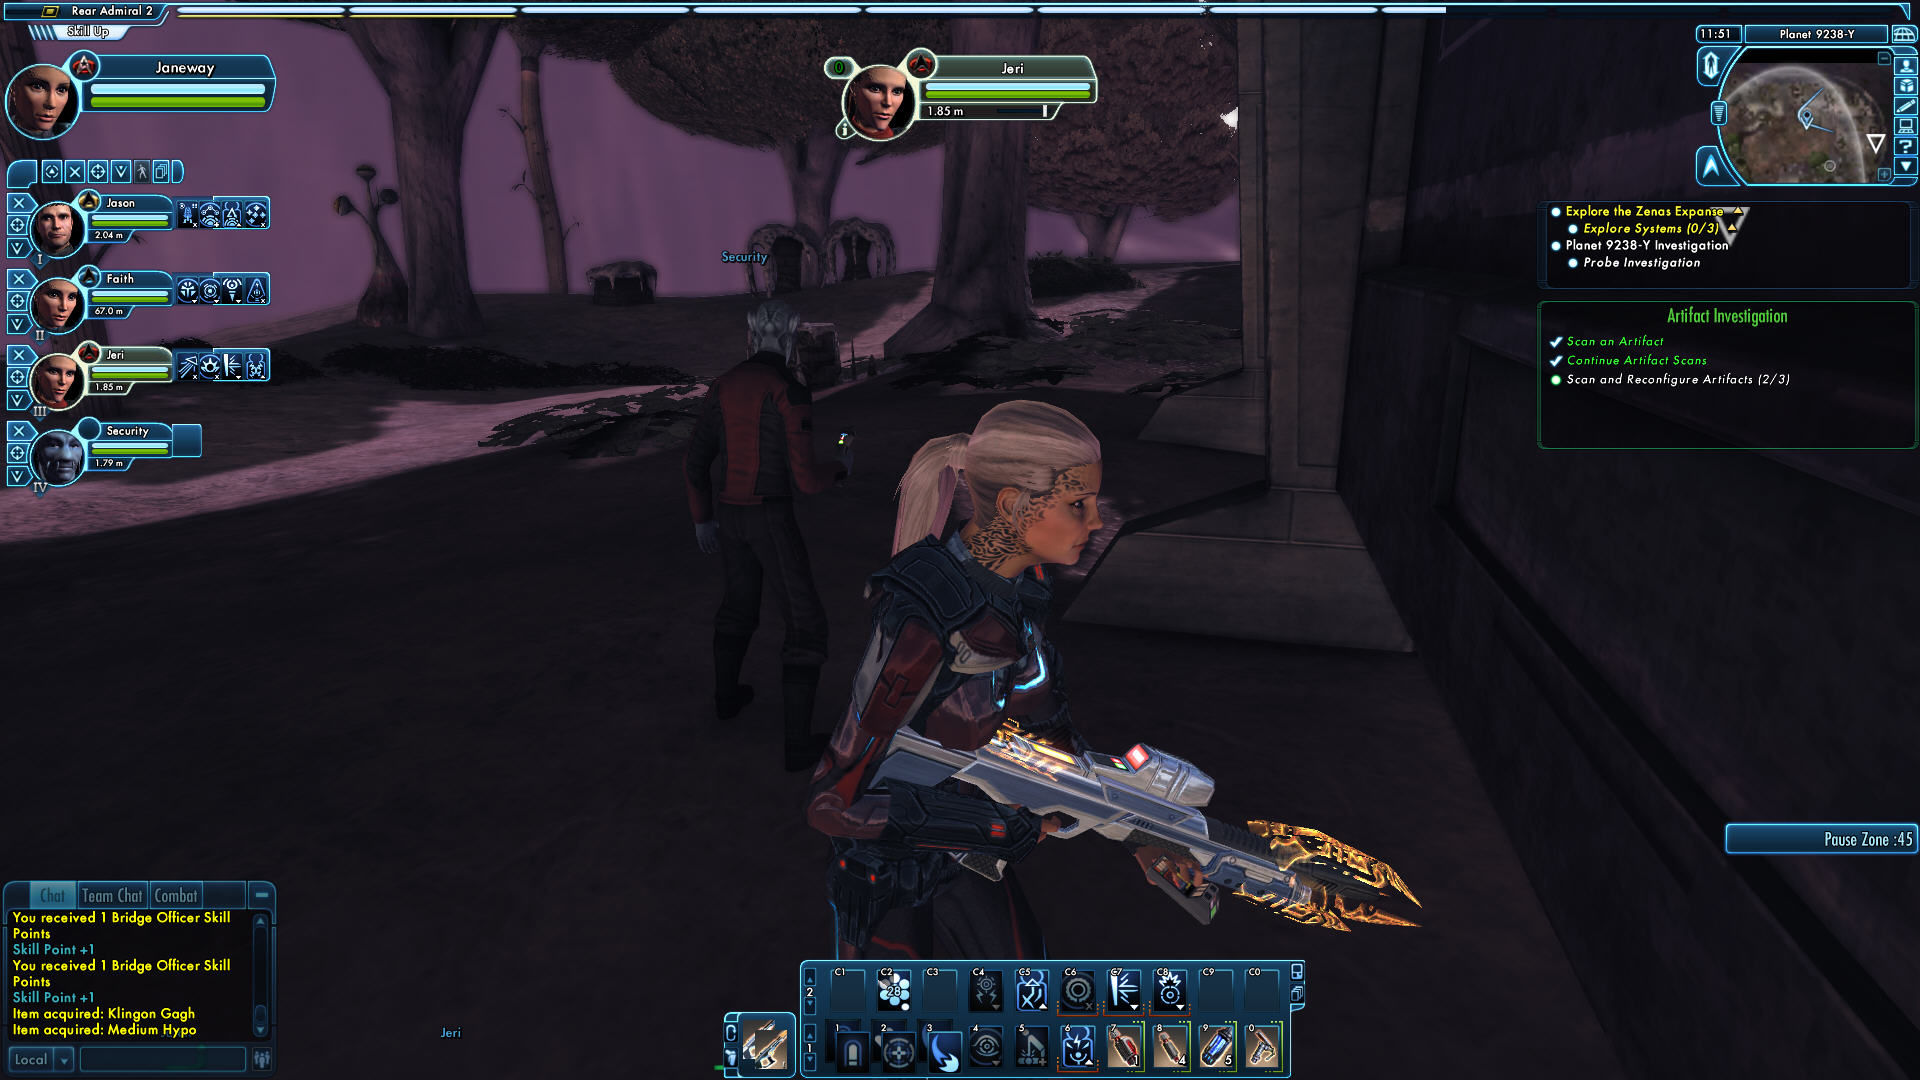 Star Trek Online (Gold Edition) Windows Exploring with TR-116A Sniper Rifle